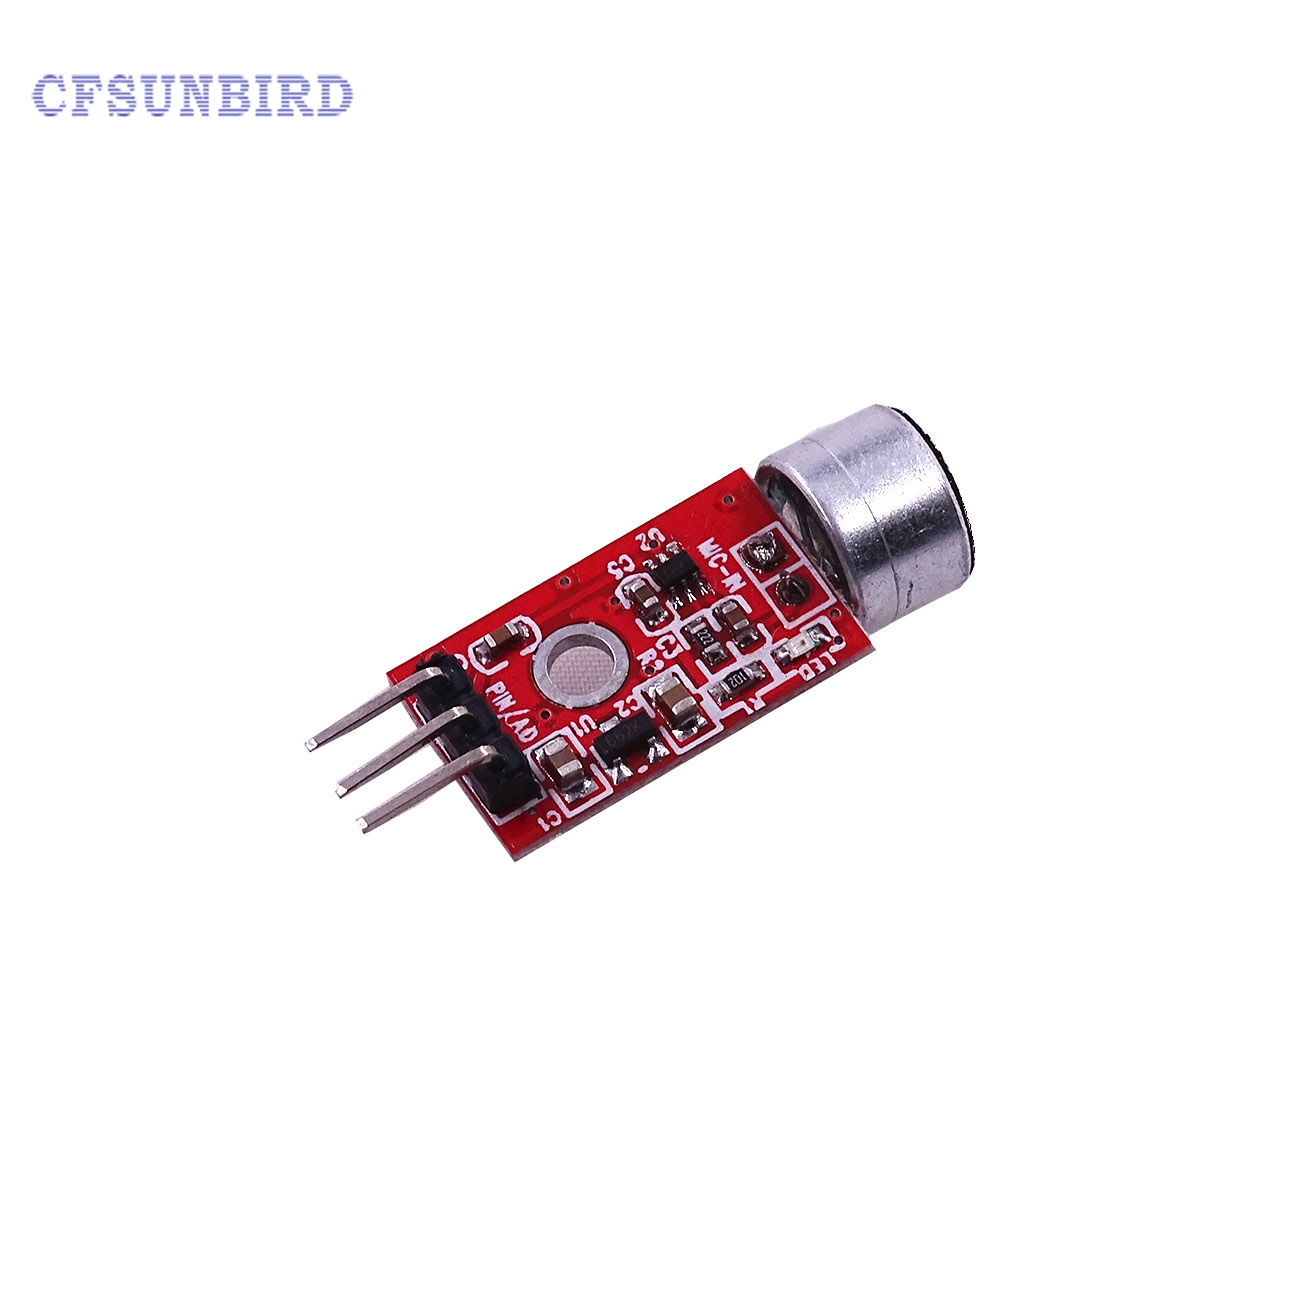 все цены на  CFsunbird Best Price!!! 10PCS MAX9812 Microphone Amplifier Sound MIC Voice Module for Arduino 3.3V/3.5V  онлайн